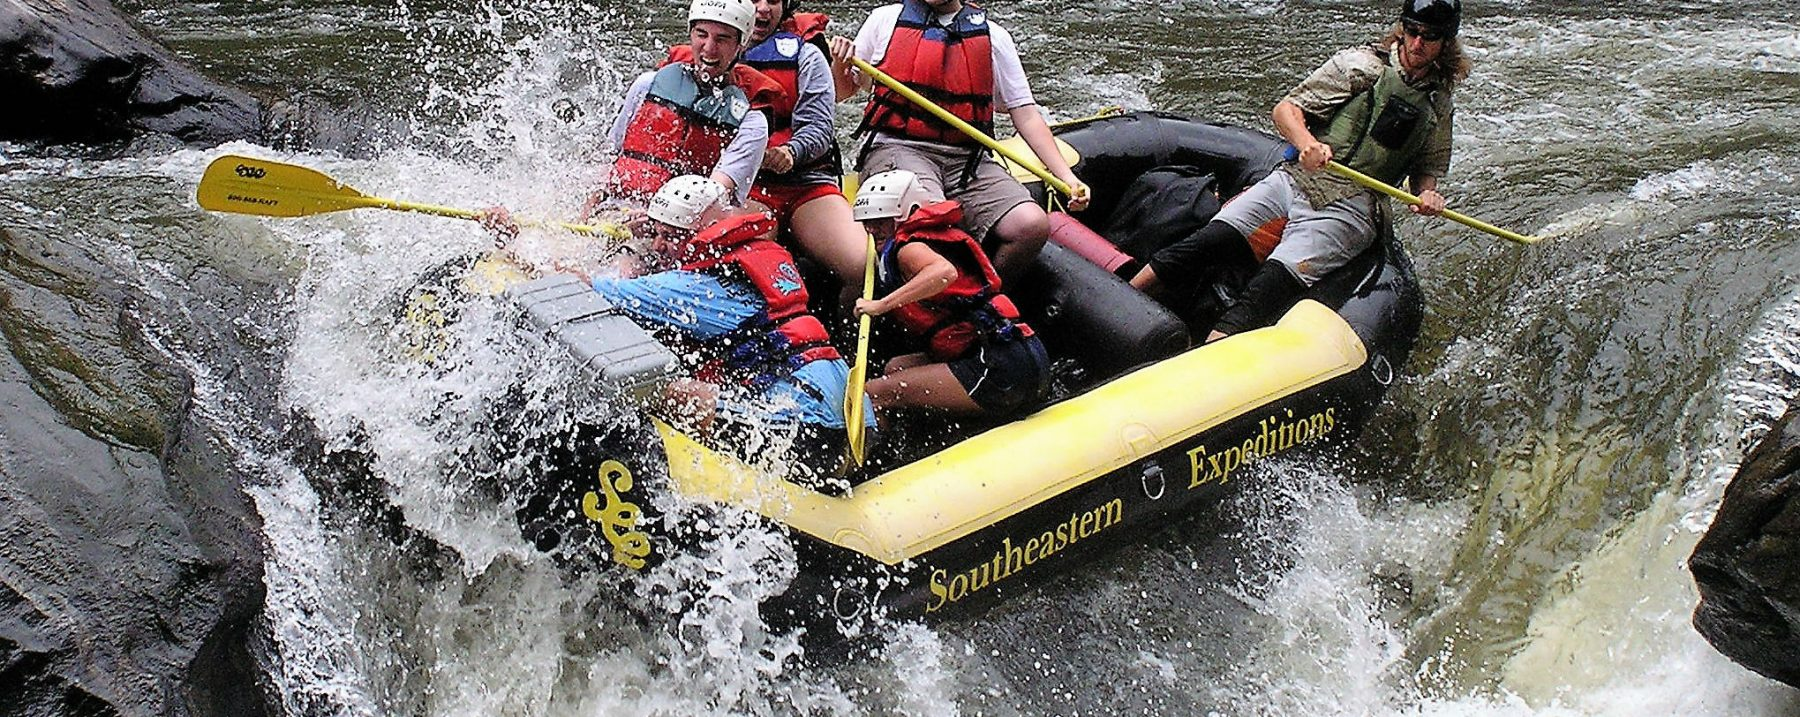 Image of Whitewater Rafting on the Nearby Chattooga River